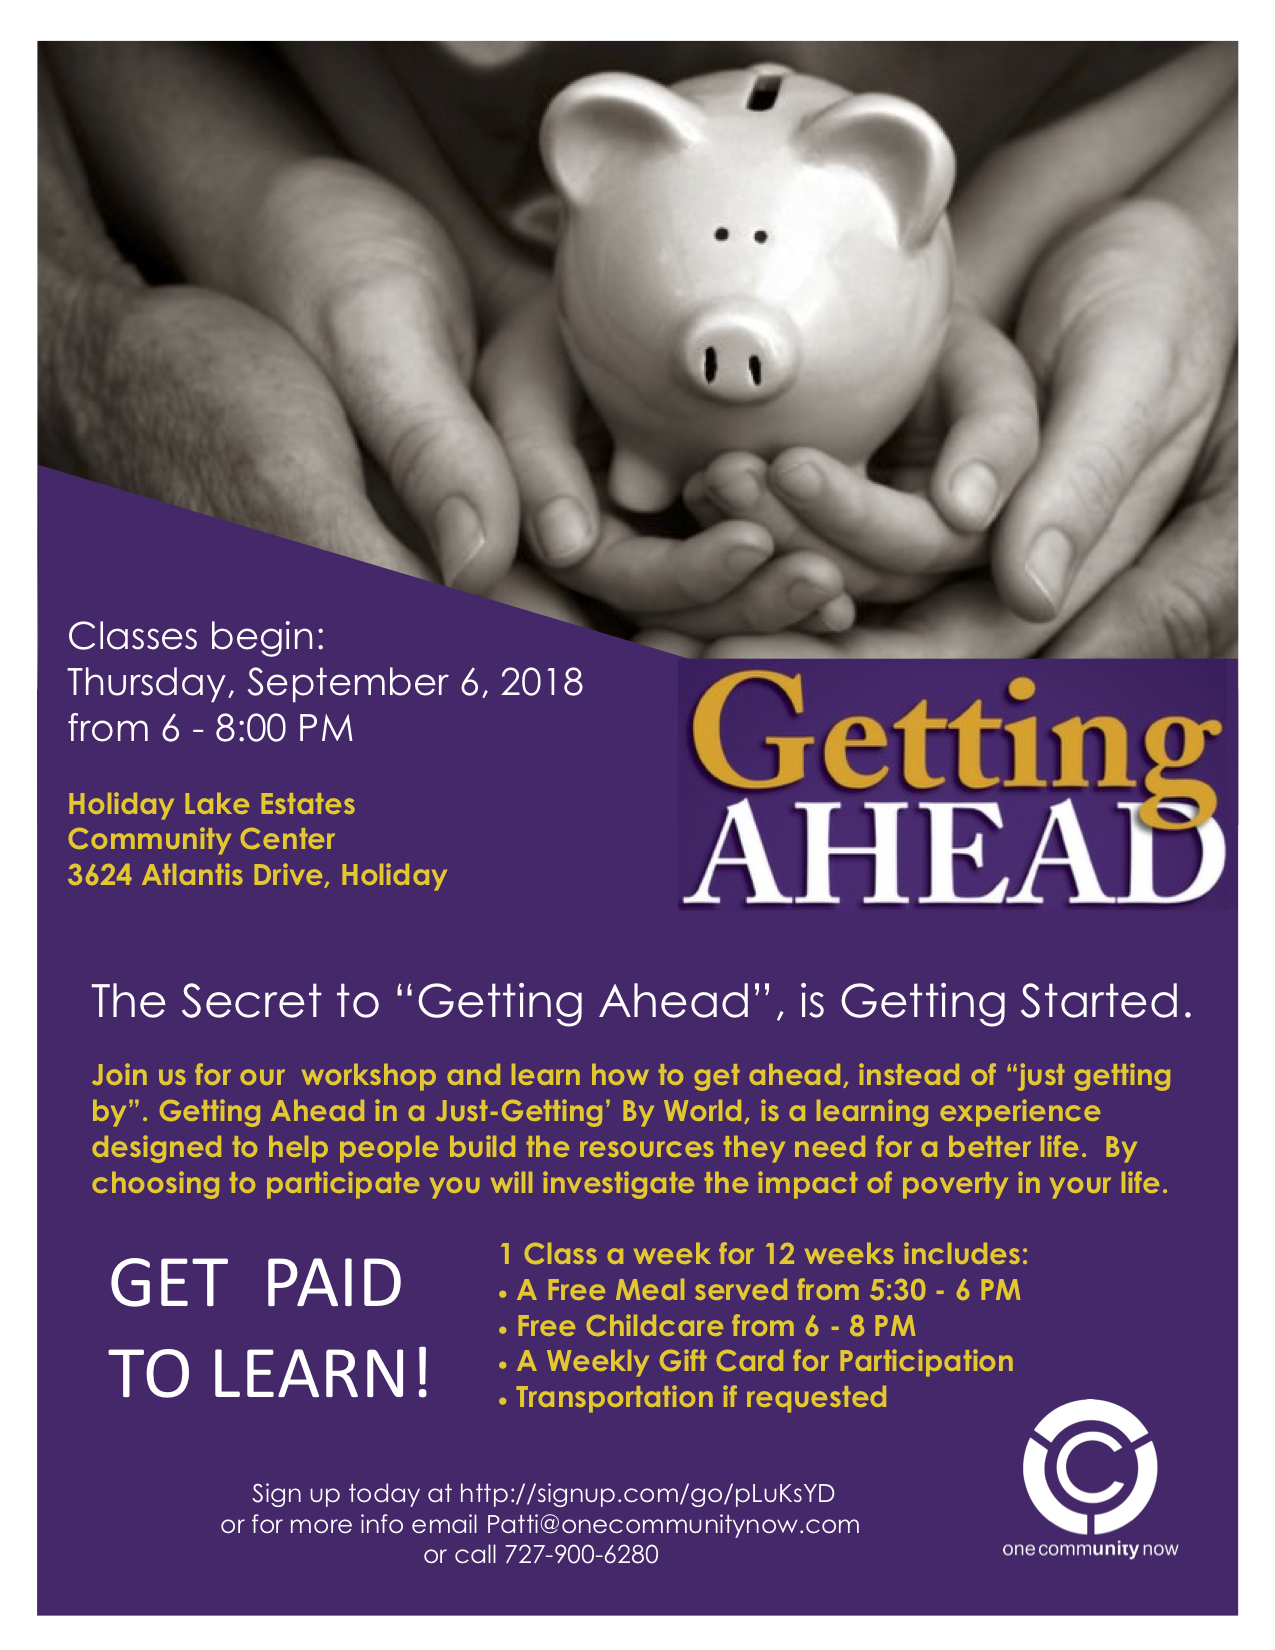 Getting Ahead Fall 2018 @ Holiday Lake Estates Community Center